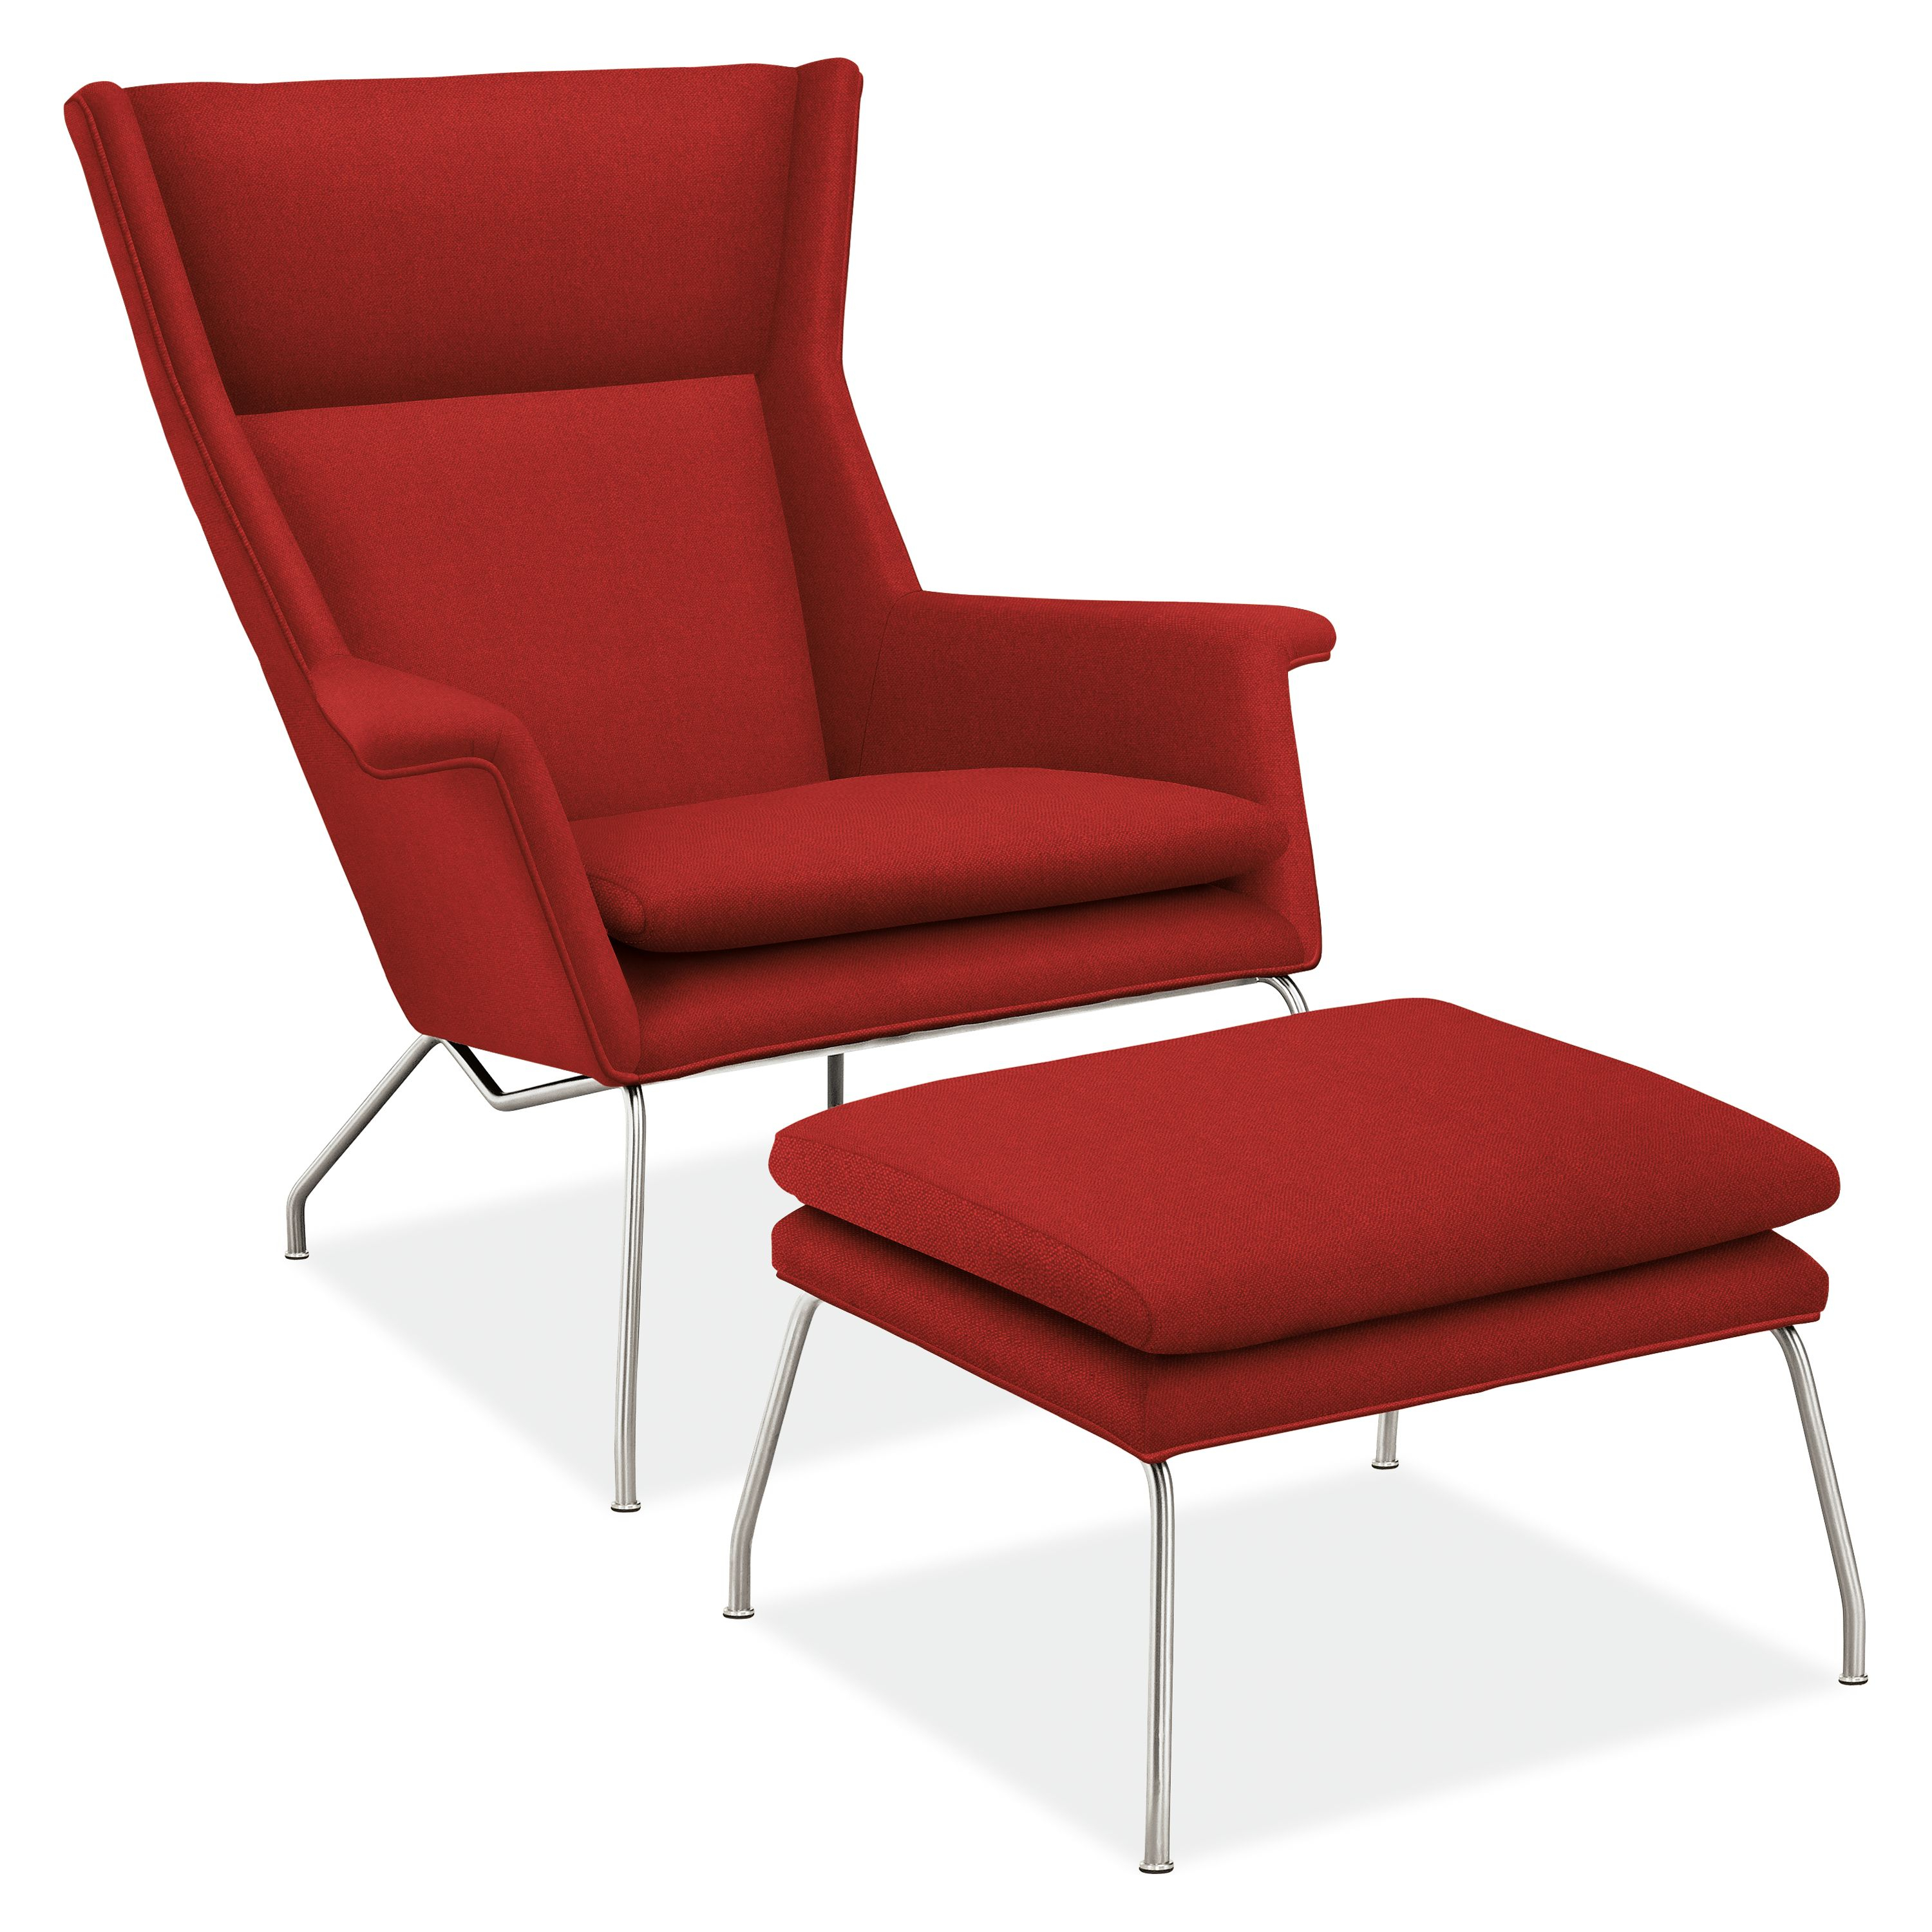 Aidan Chair & Ottoman | Products | Pinterest | Ottoman, Chair And Throughout Aidan Ii Swivel Accent Chairs (View 11 of 25)